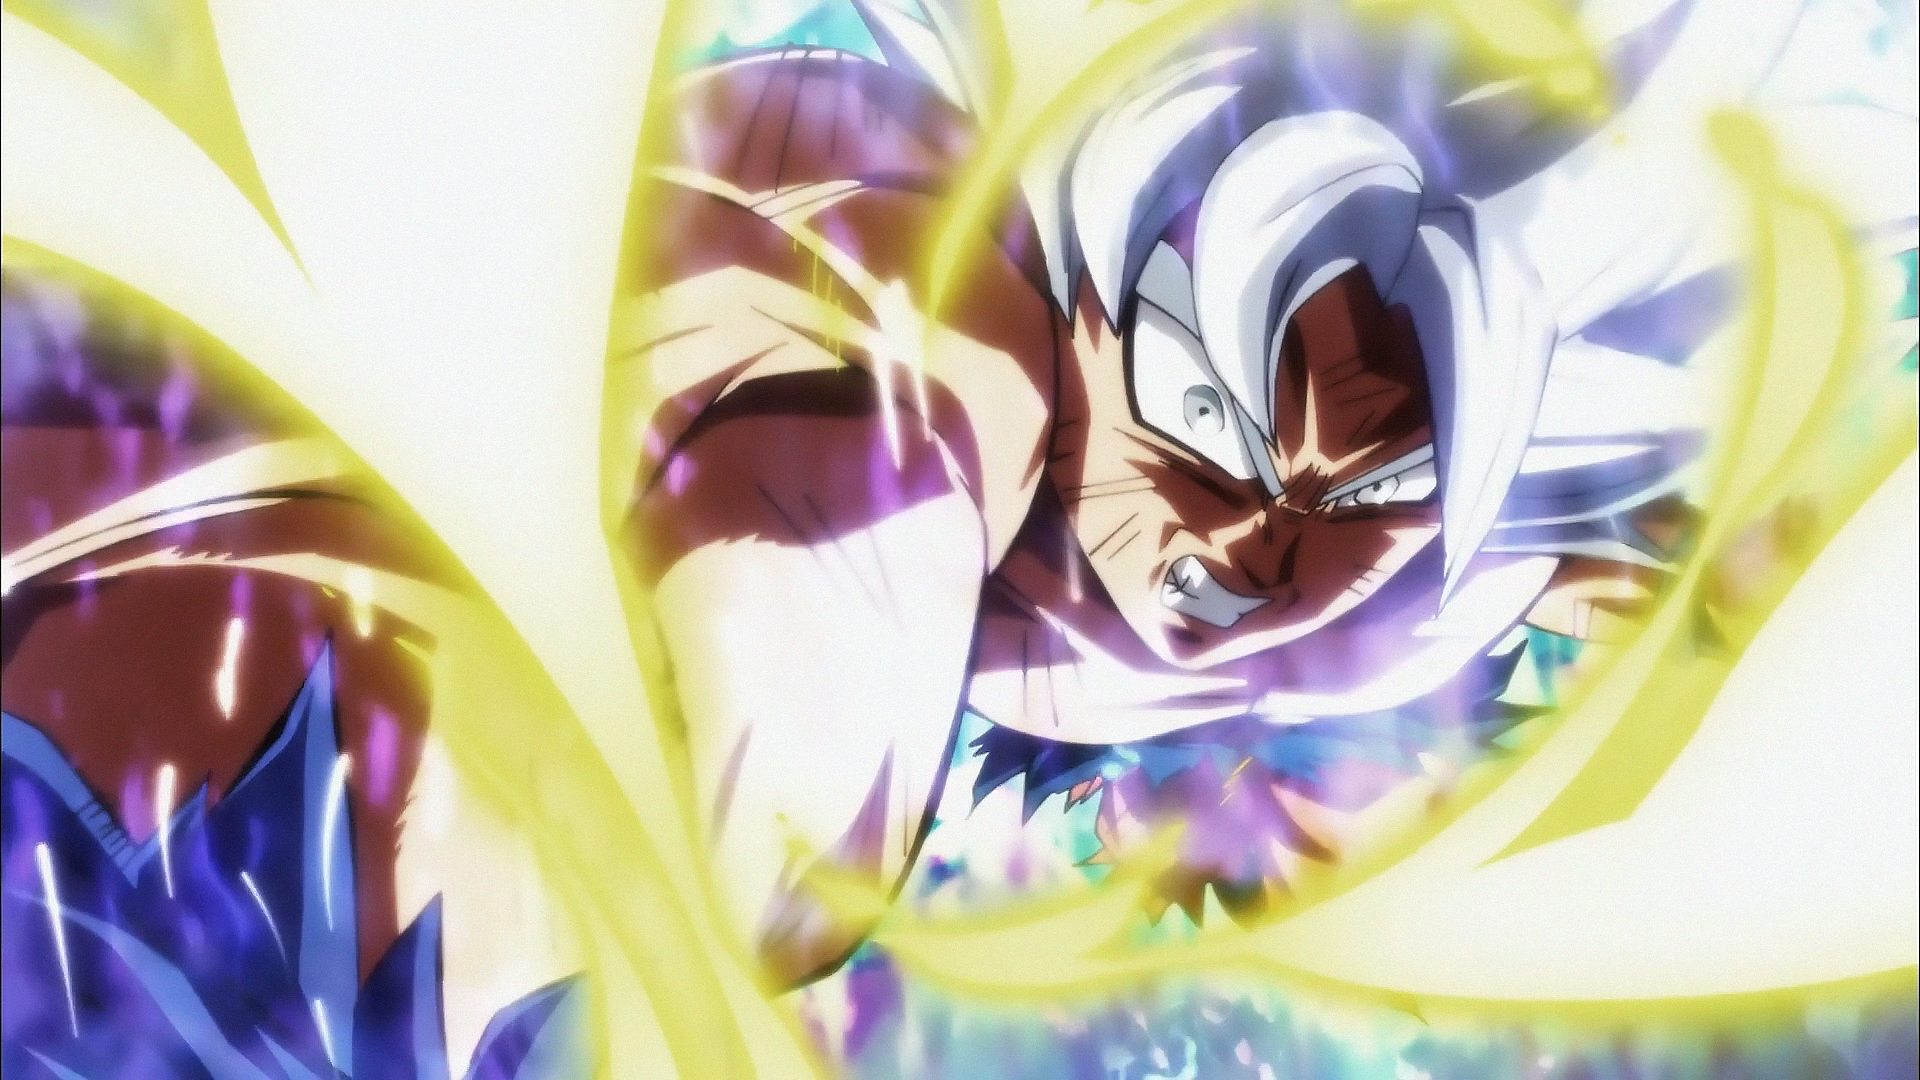 Angry Goku Mastered Ultra Instinct Hd Wallpaper Background Image